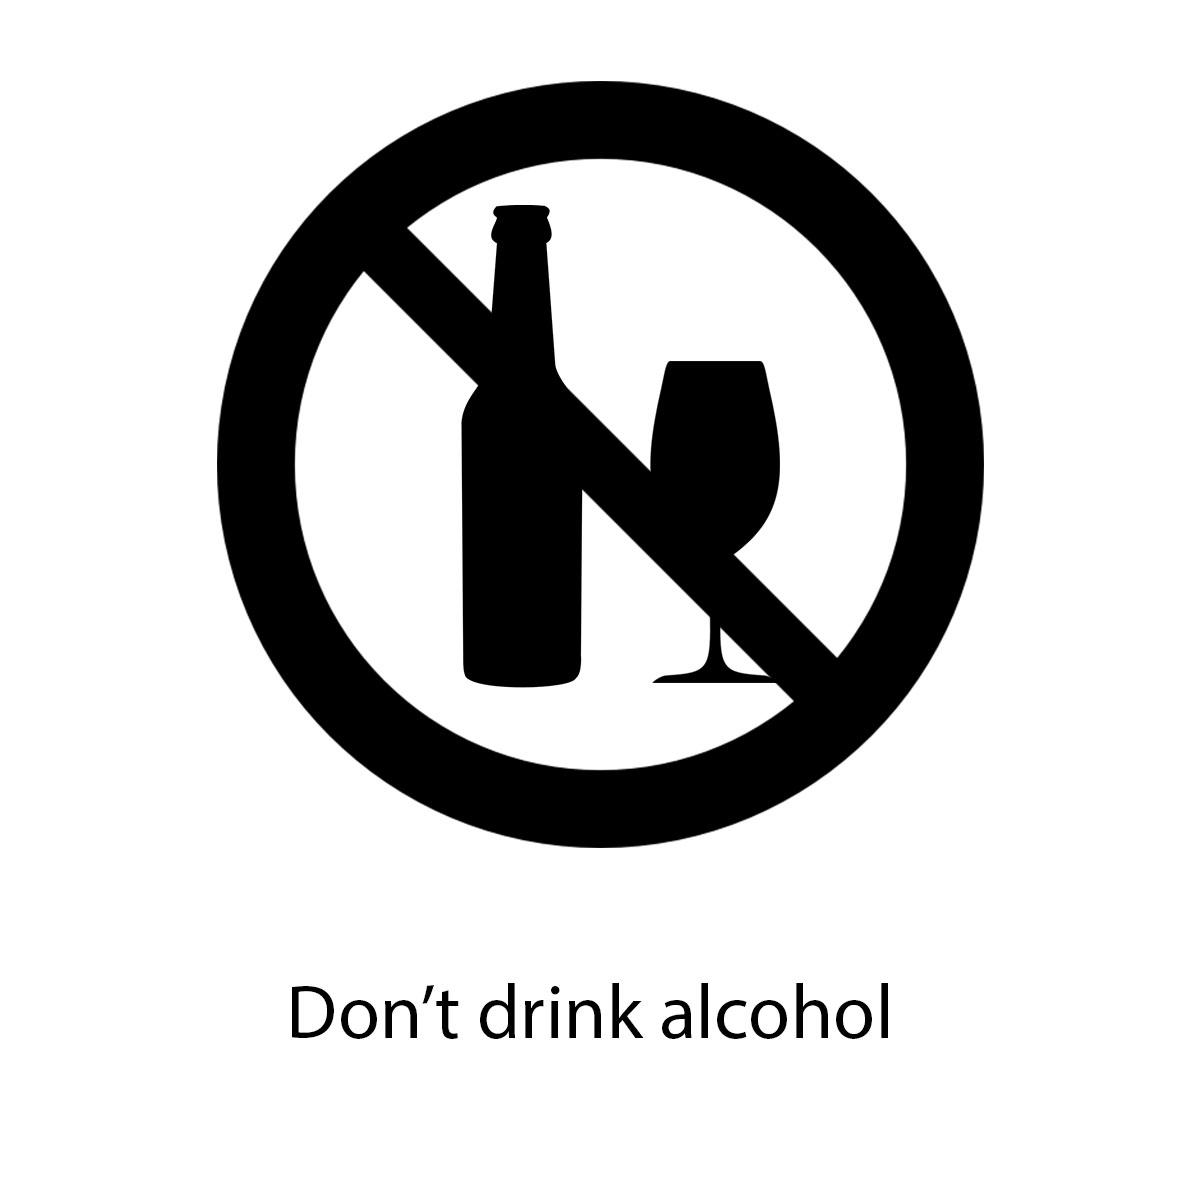 dont-drink-alcohol.jpg